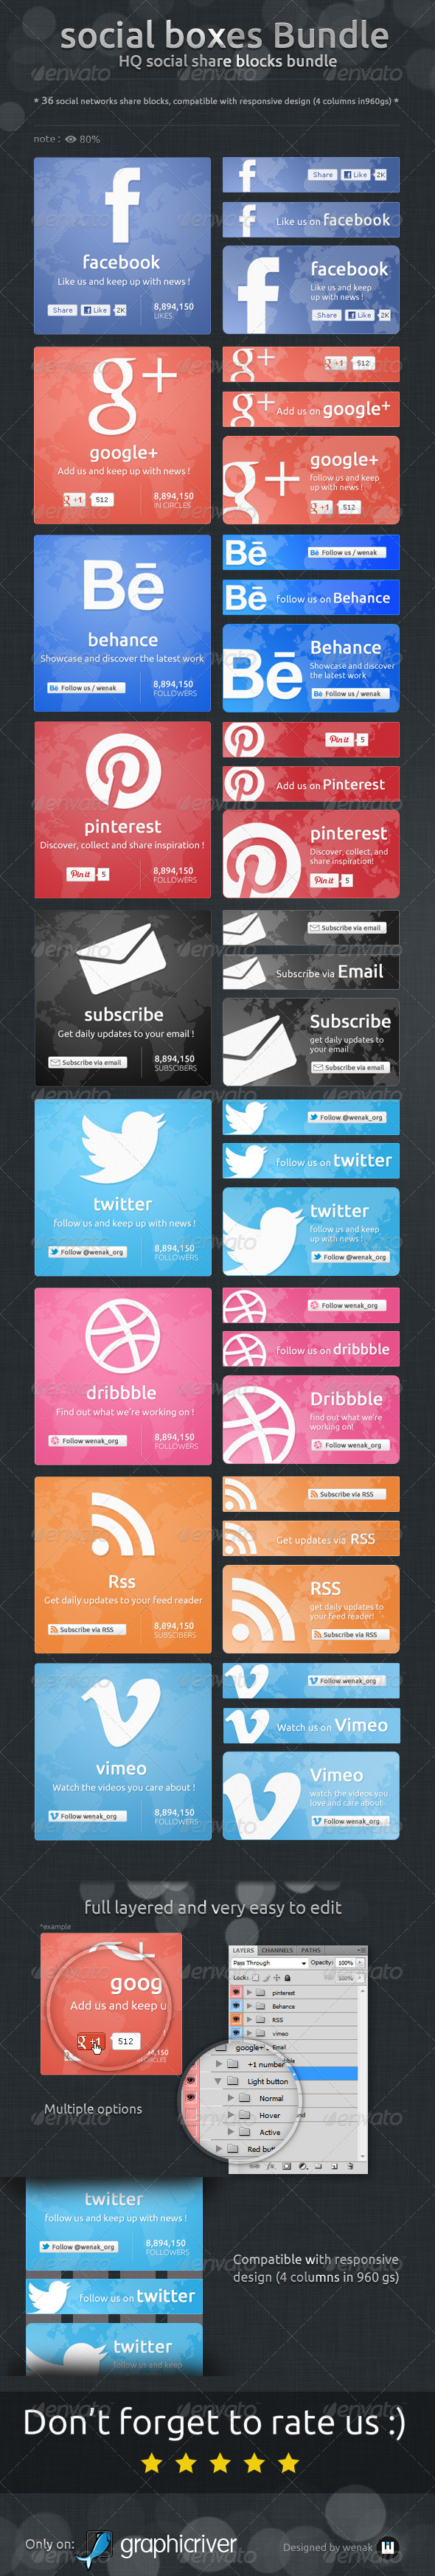 Social Boxes Bundle - Social Share Blocks - Social Media Web Elements